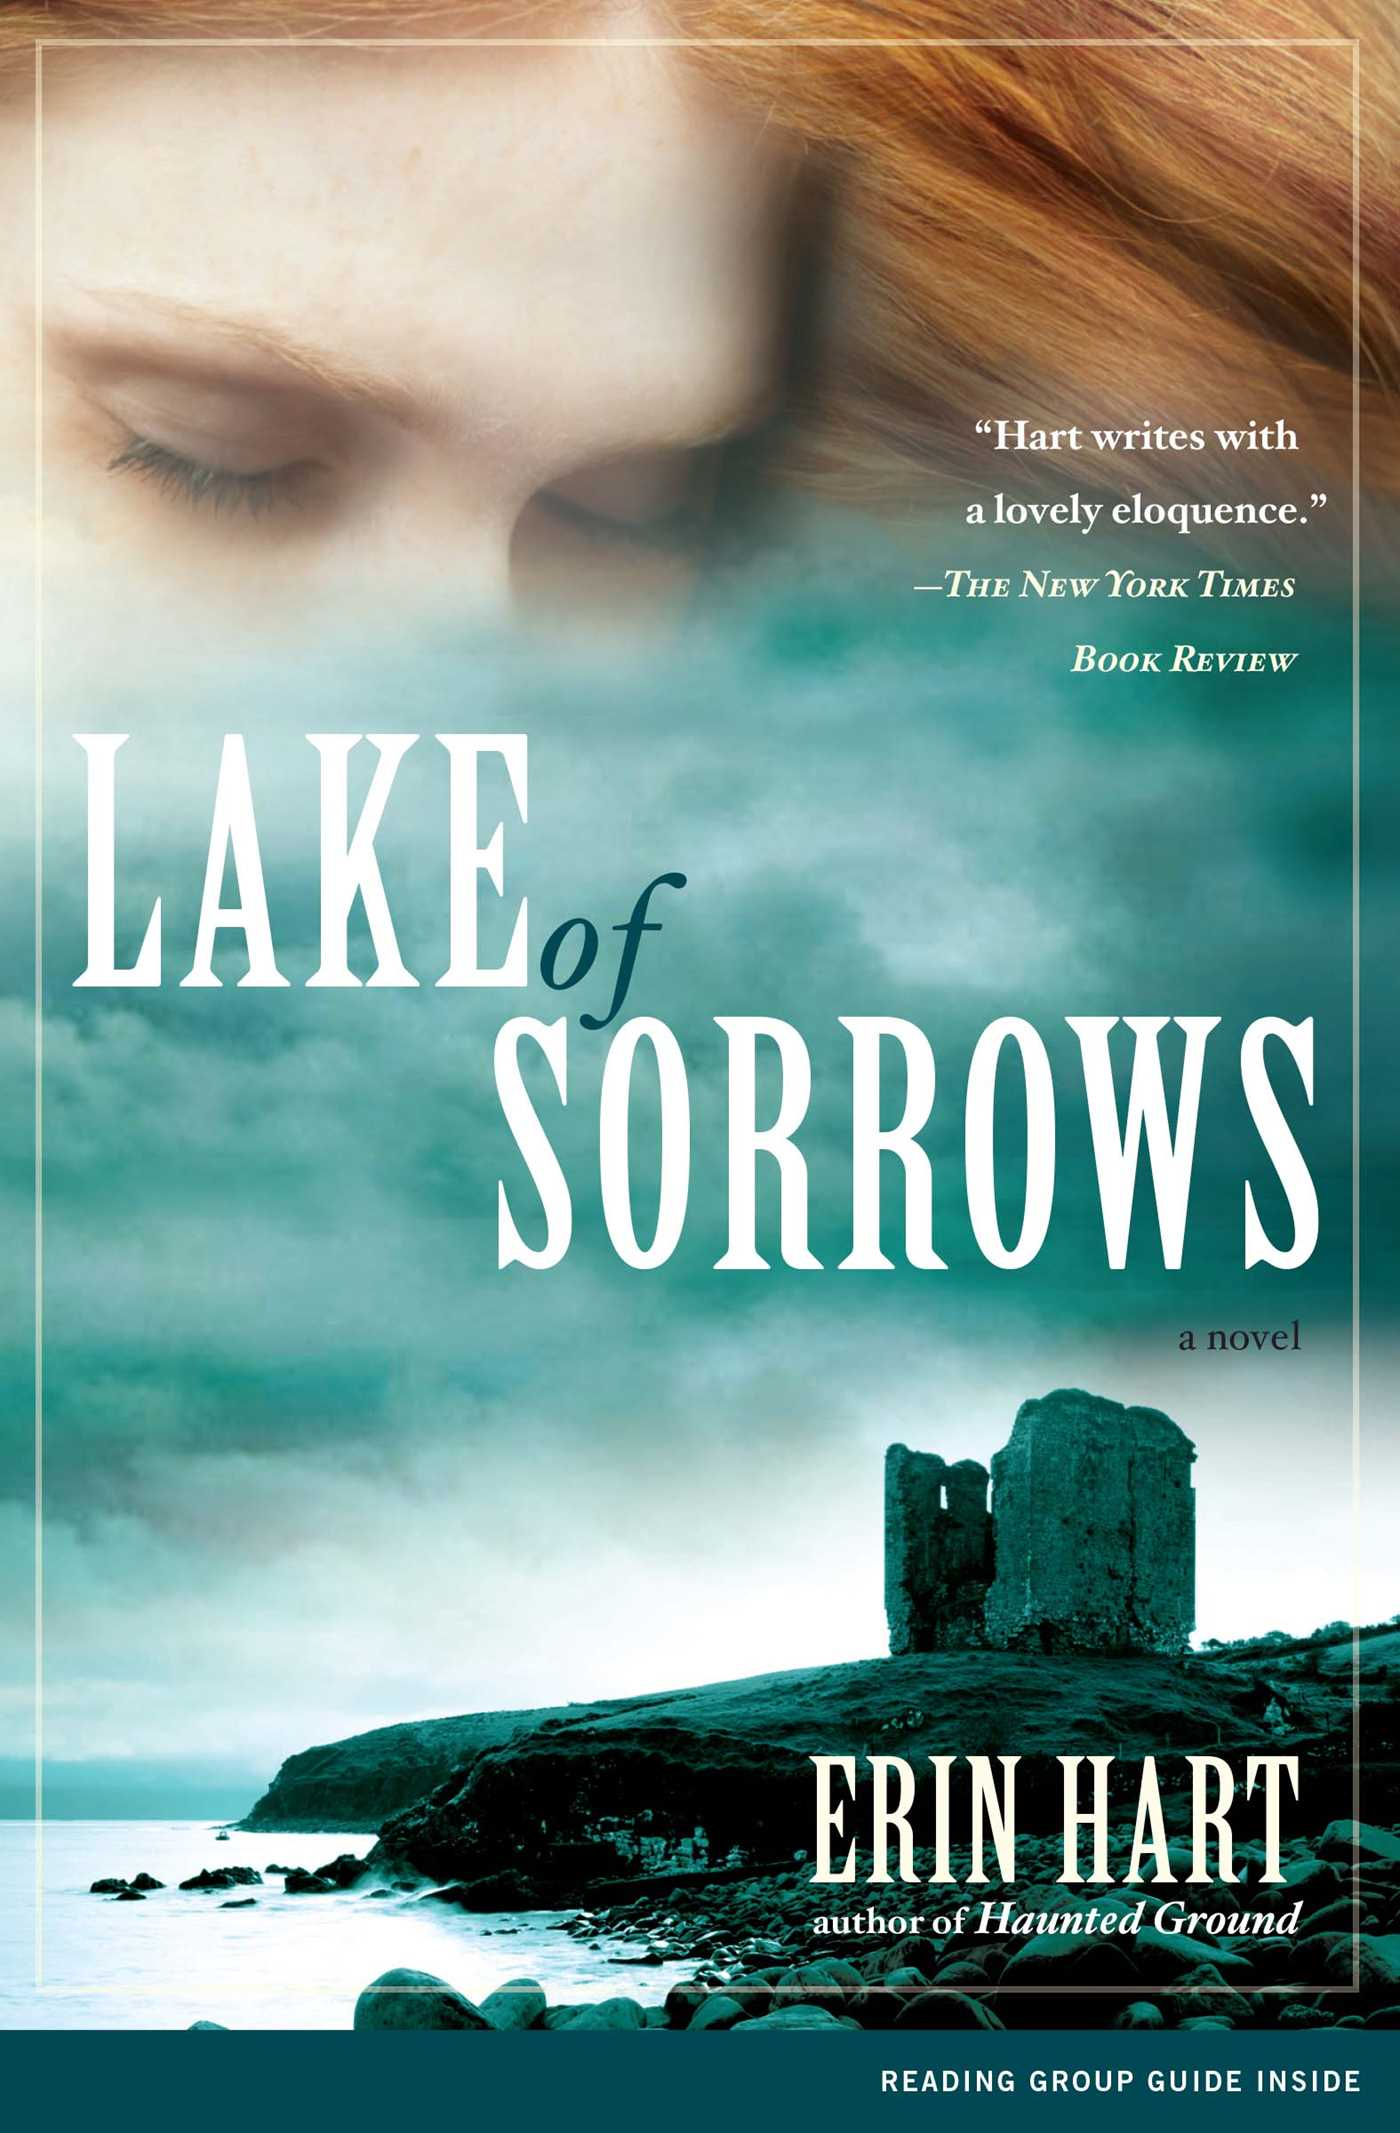 Lake of sorrows 9781416541301 hr